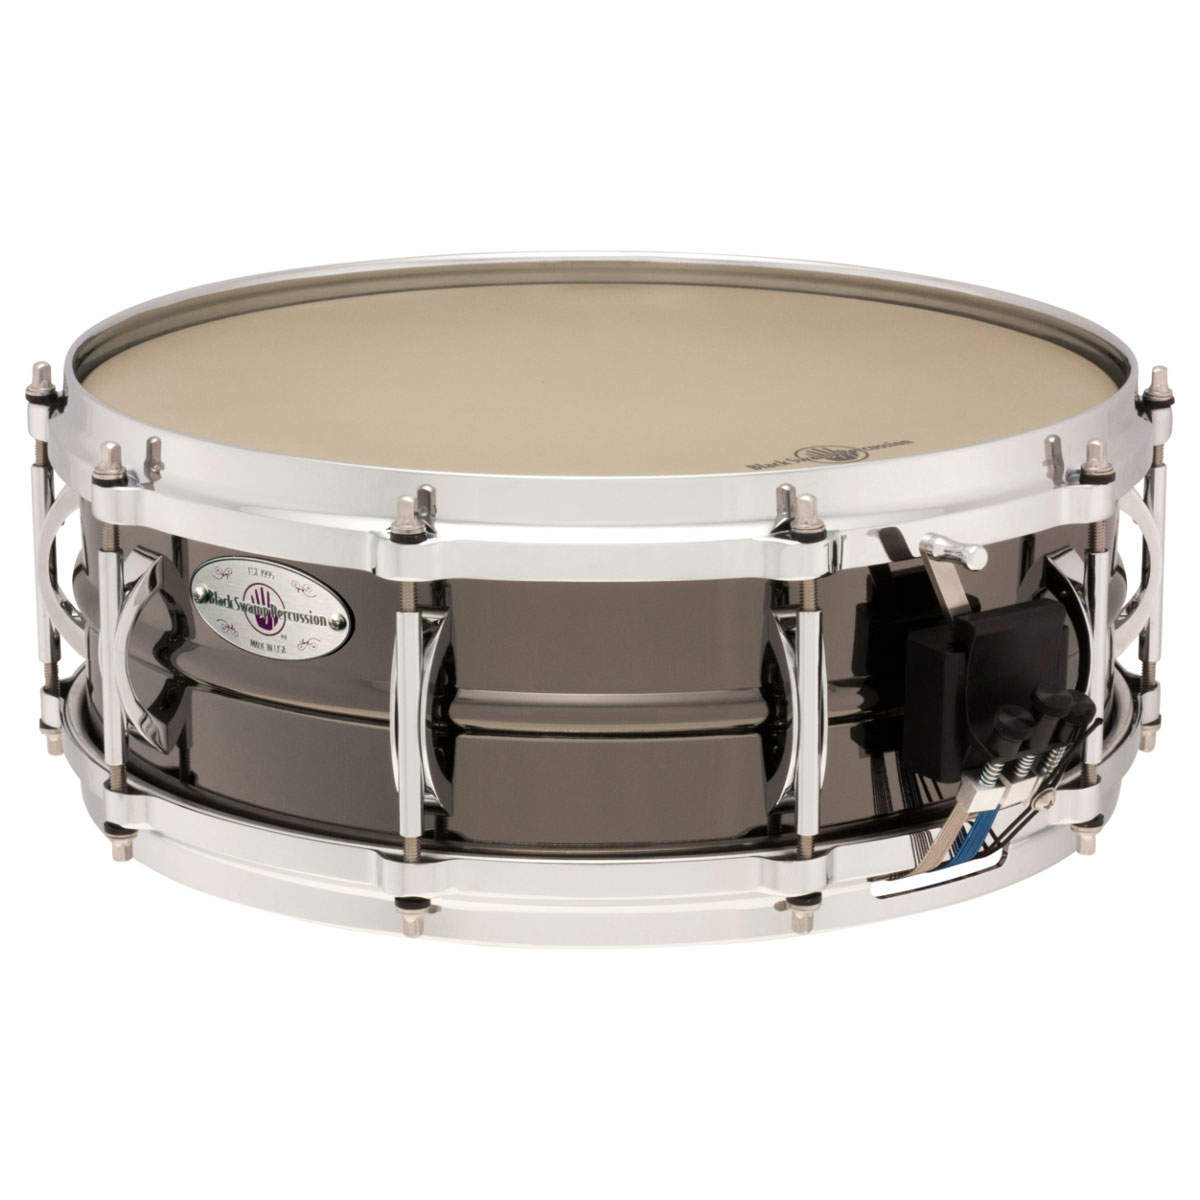 "Black Swamp 5"" x 14"" SoundArt Brass Concert Snare Drum"